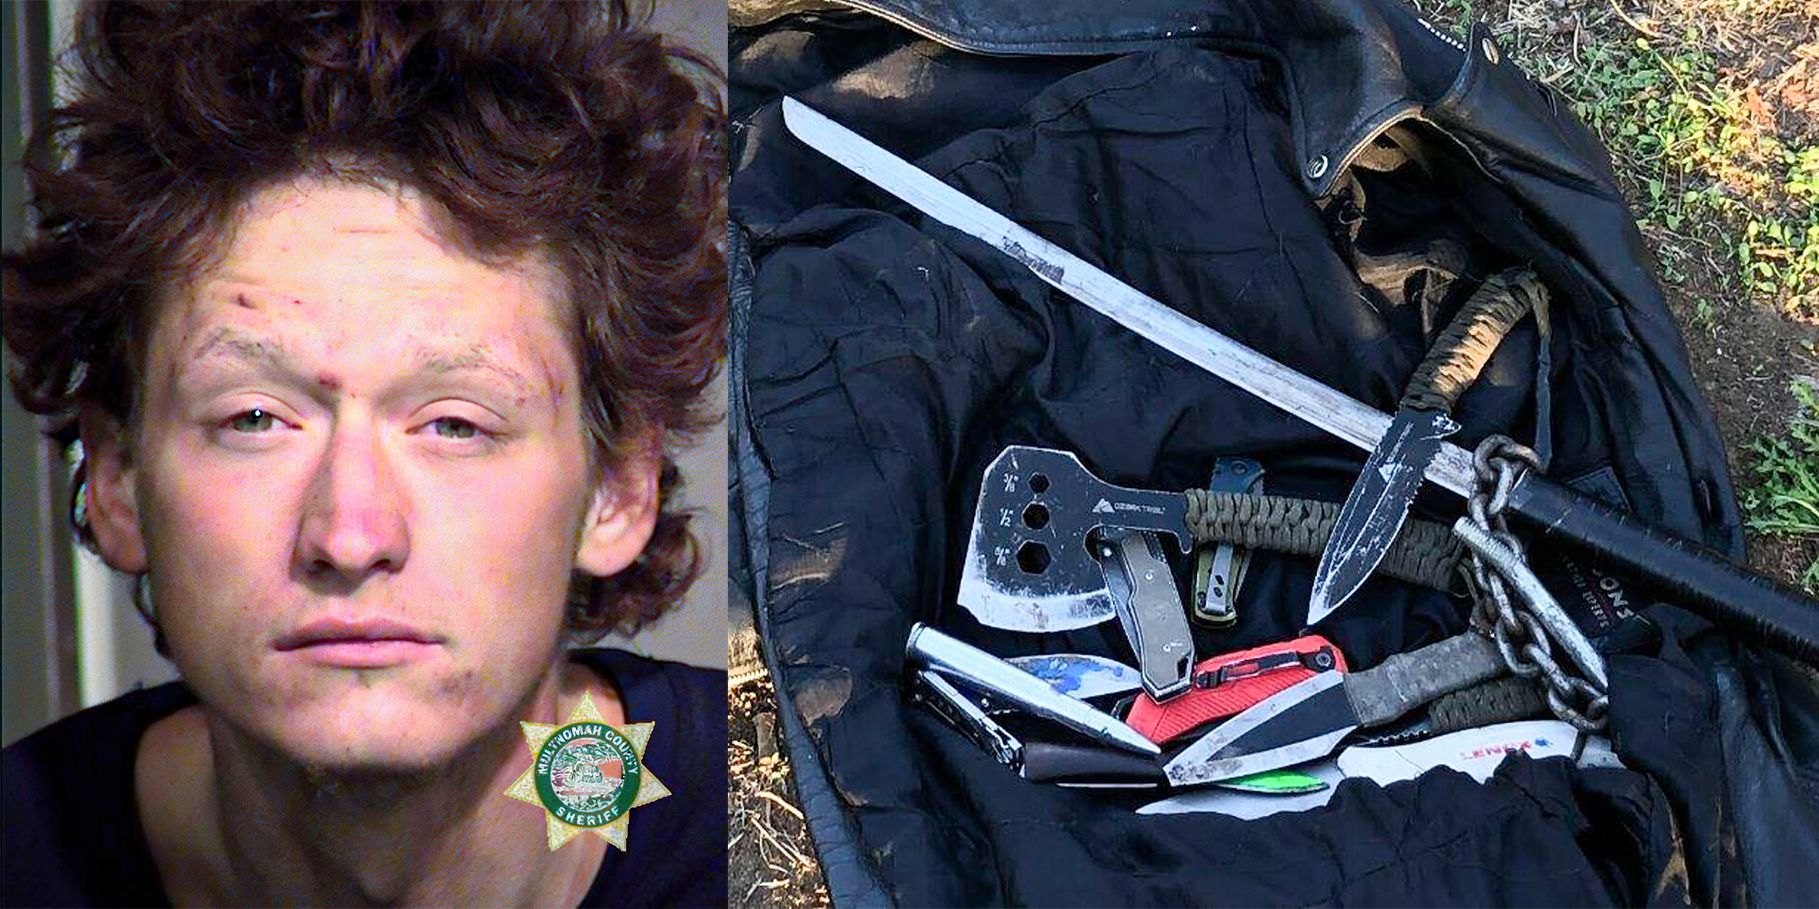 Burglary suspect threatens Portland police officers with sword, axe